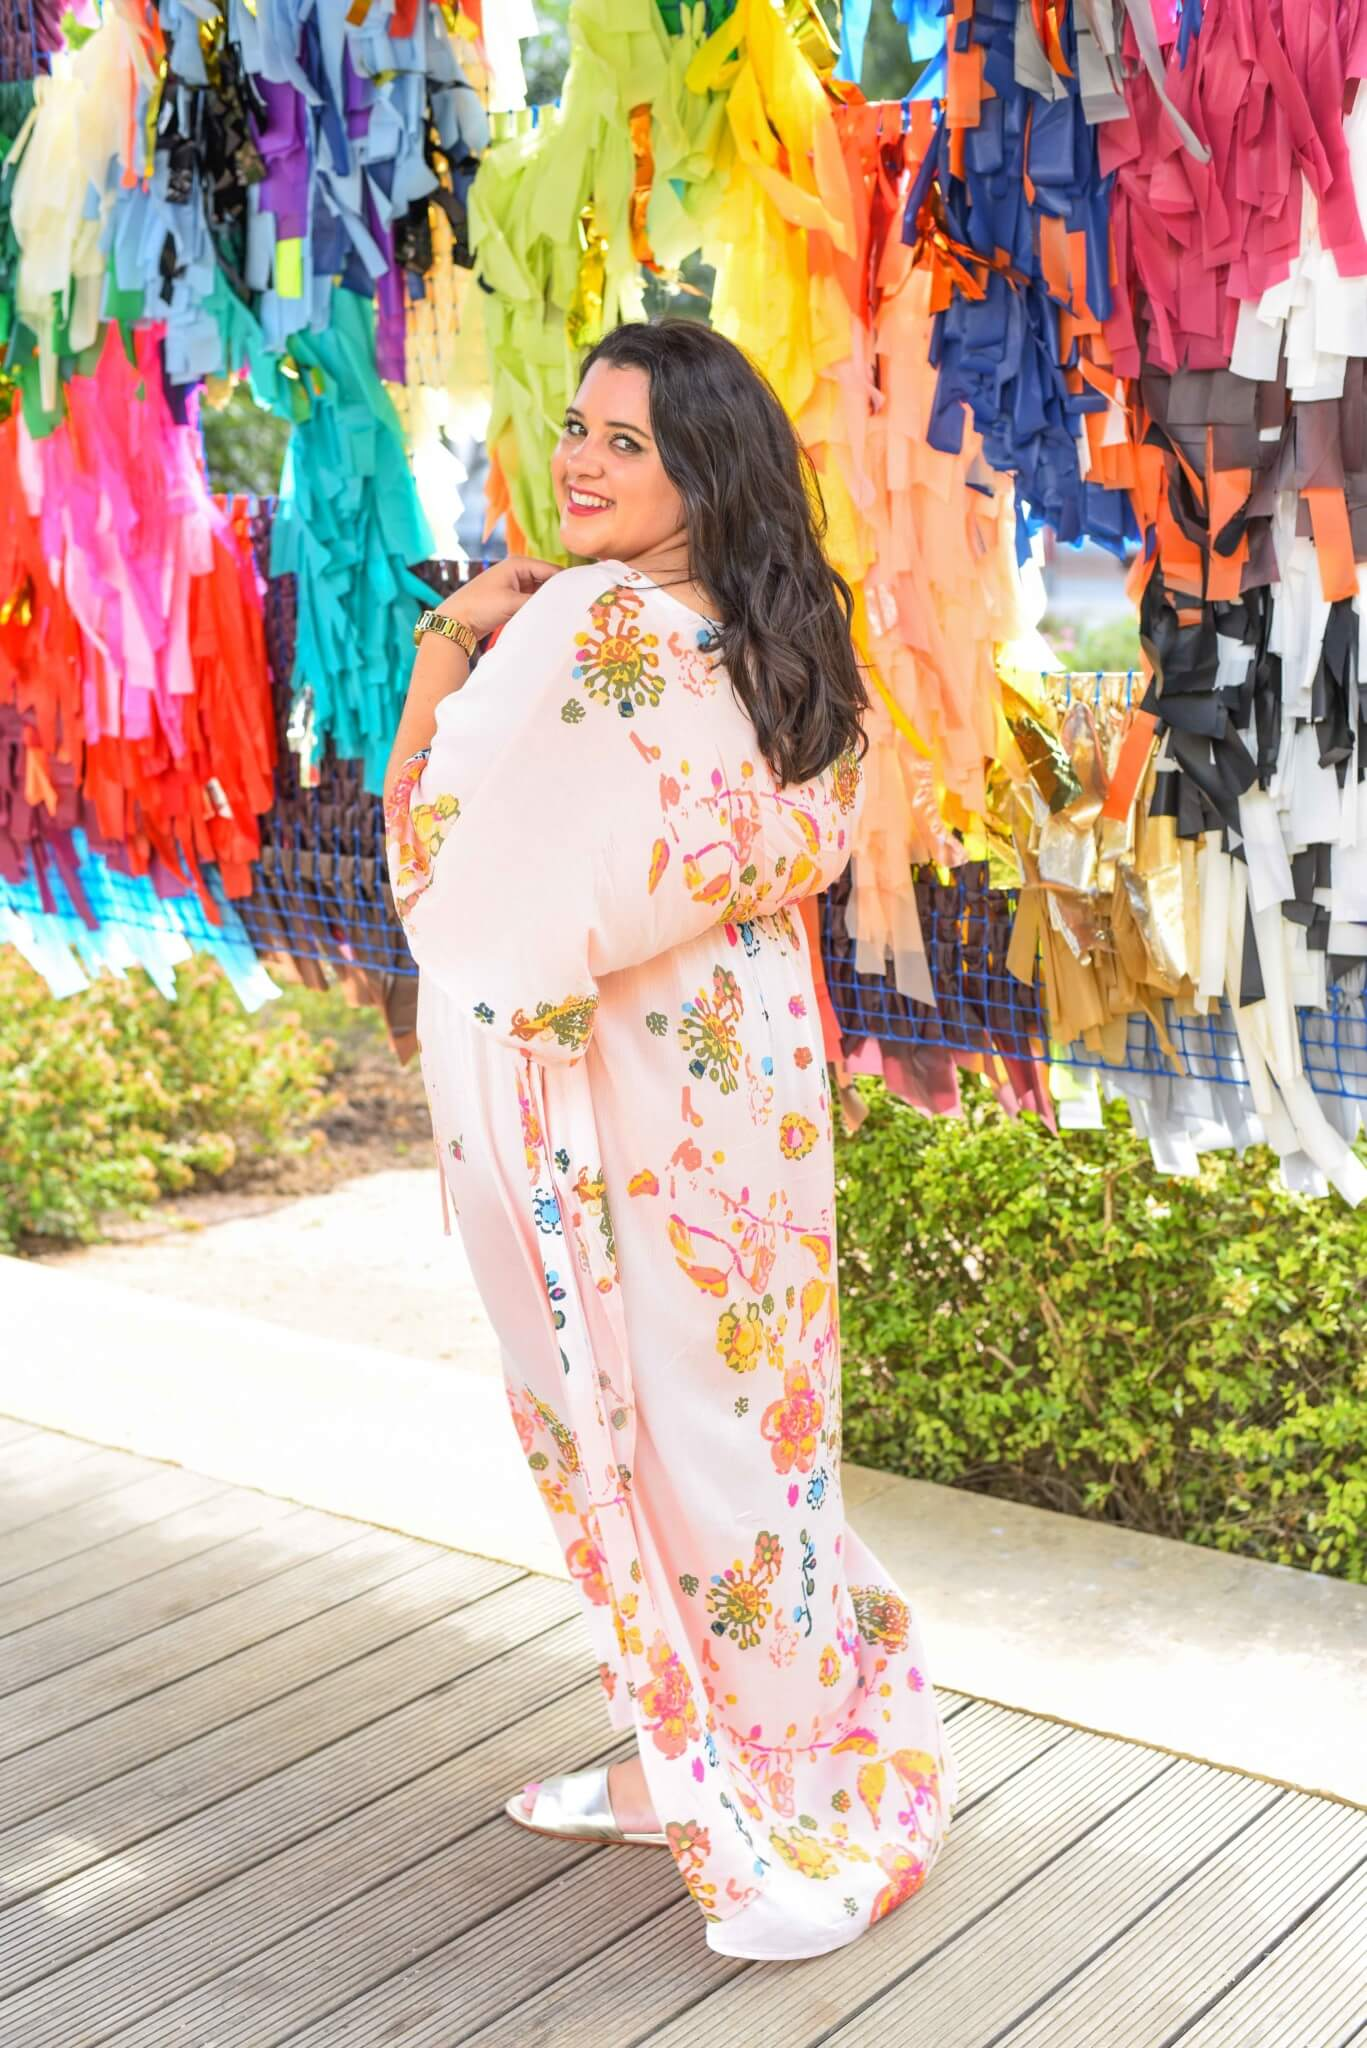 A fun, flirty maxi dress is perfect for a day time date (or day spent with friends) exploring new art installations. This plus size maxi dress from Melissa McCarthy Seven7 can be worn casually or glammed up for an evening out. #plussizefashion #bohemianfashion #curvystyle